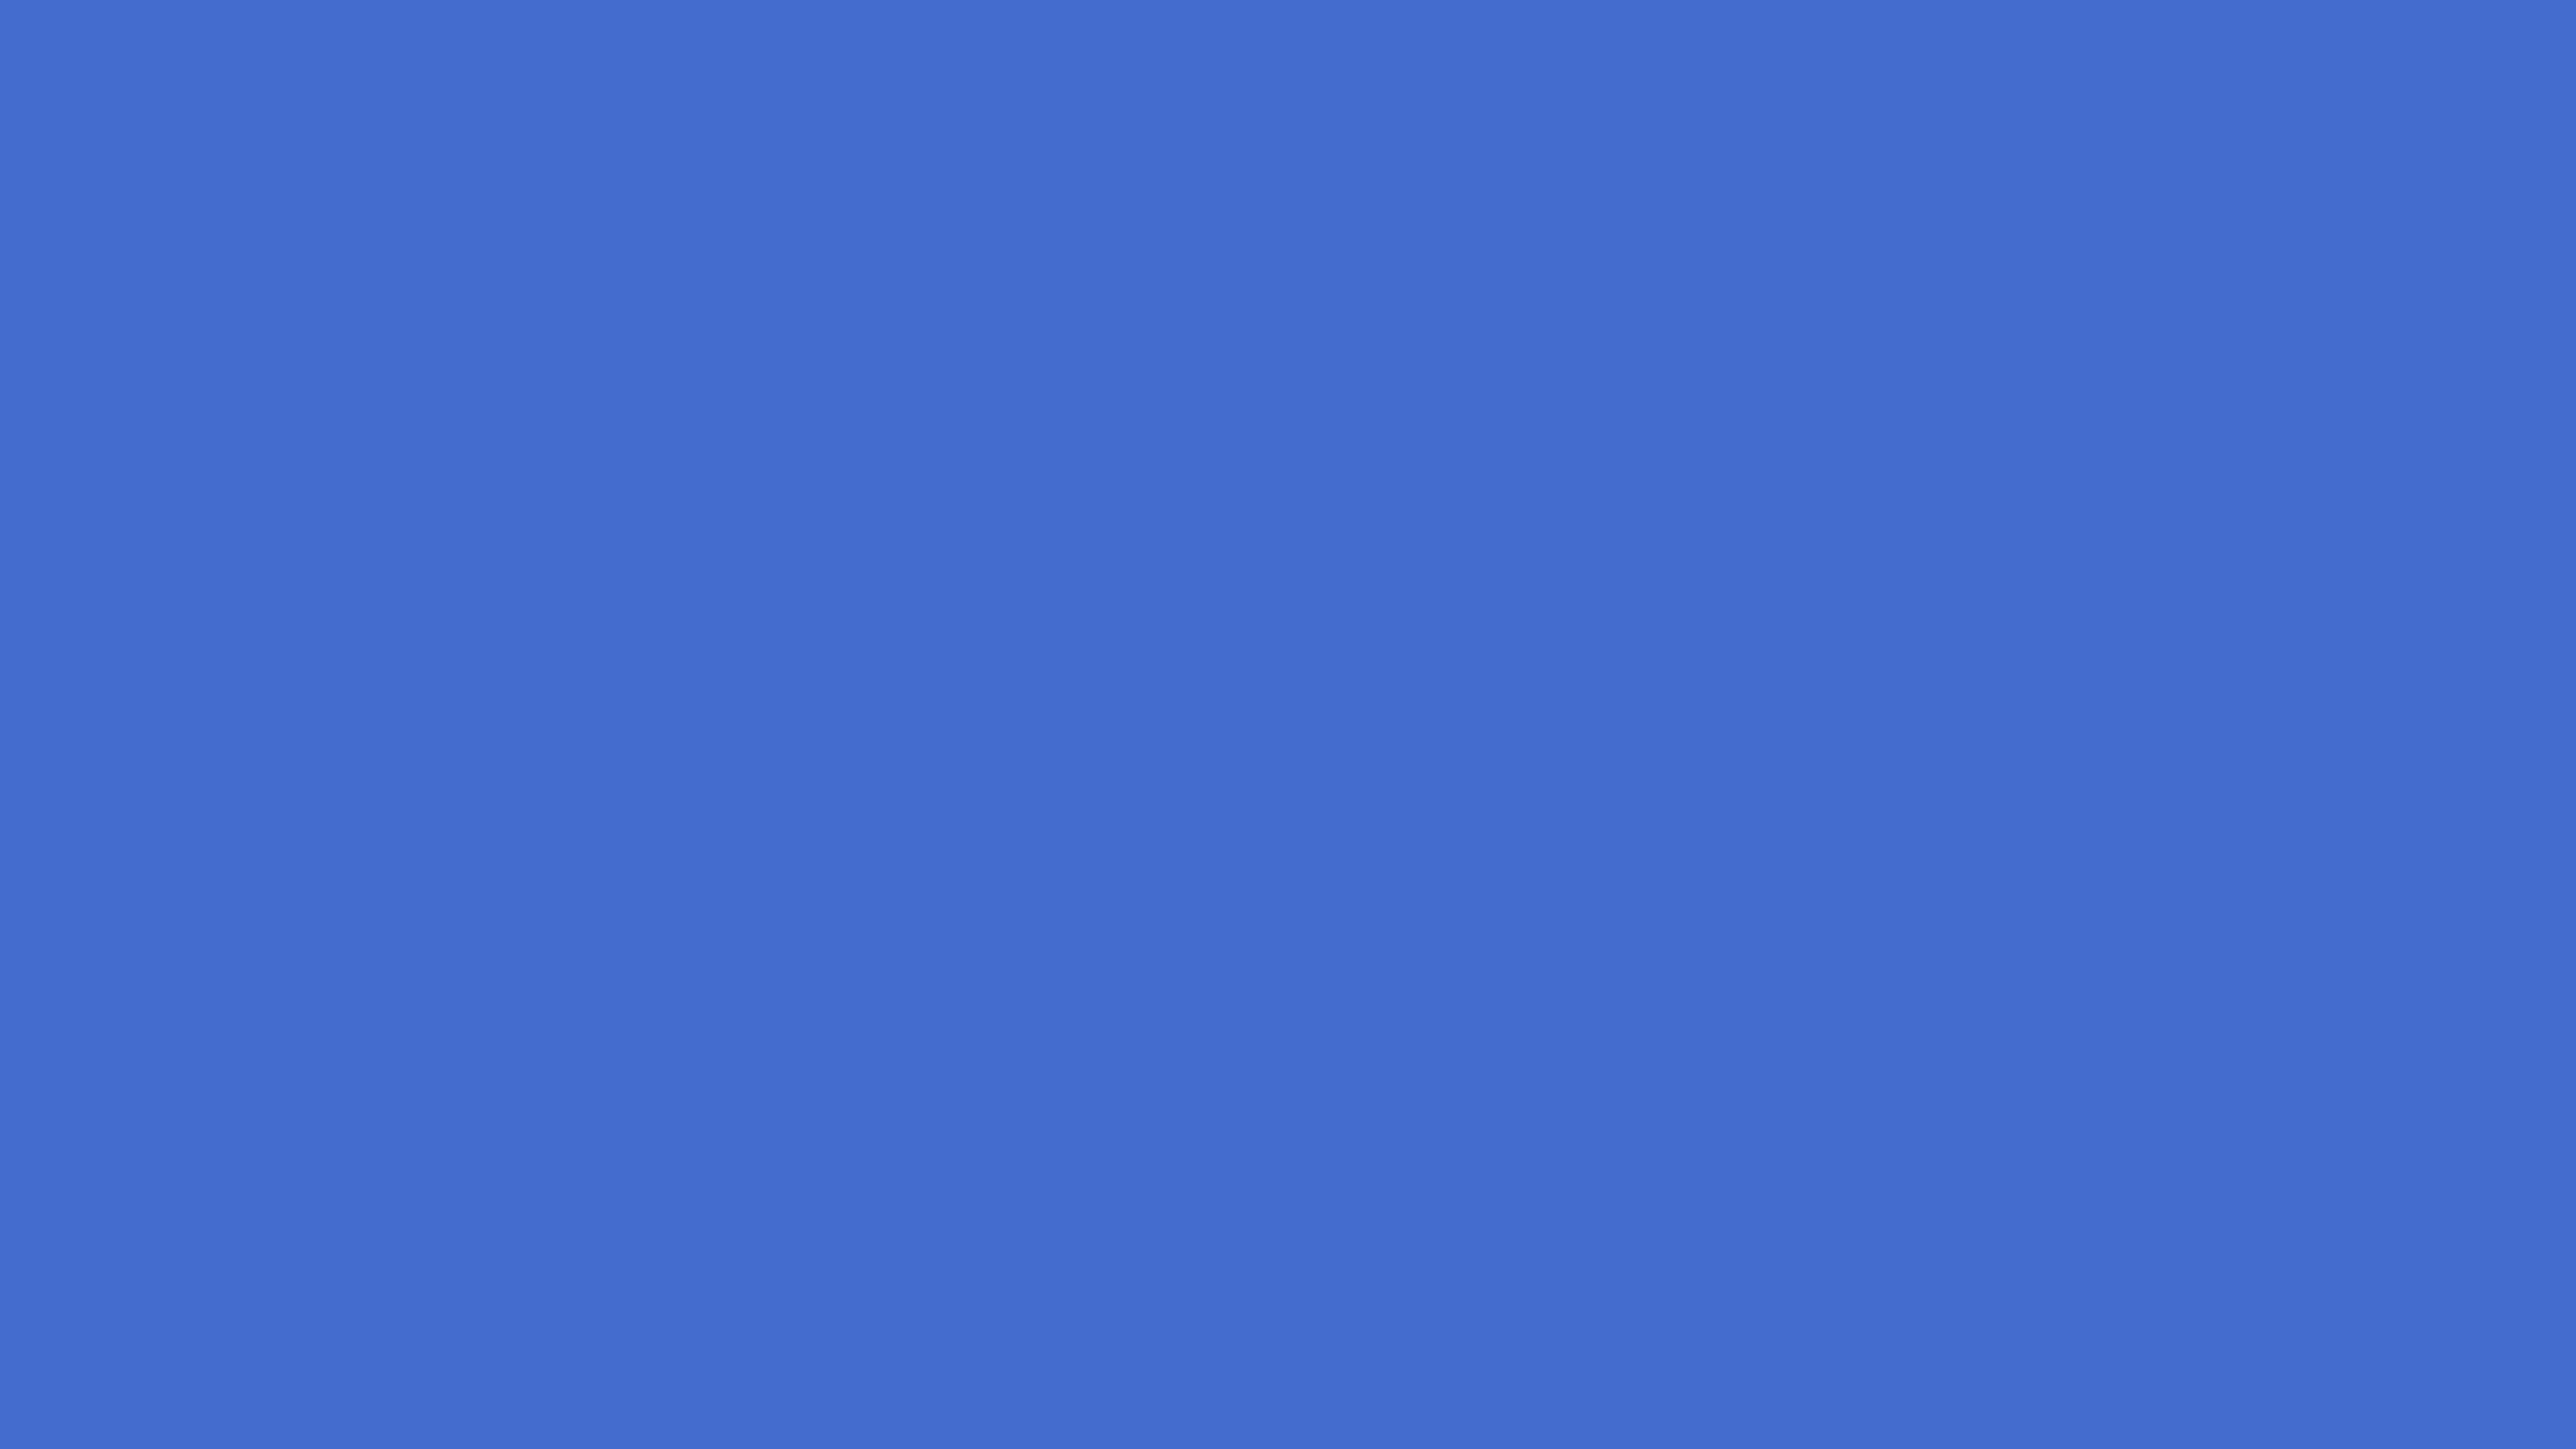 3840x2160 Han Blue Solid Color Background